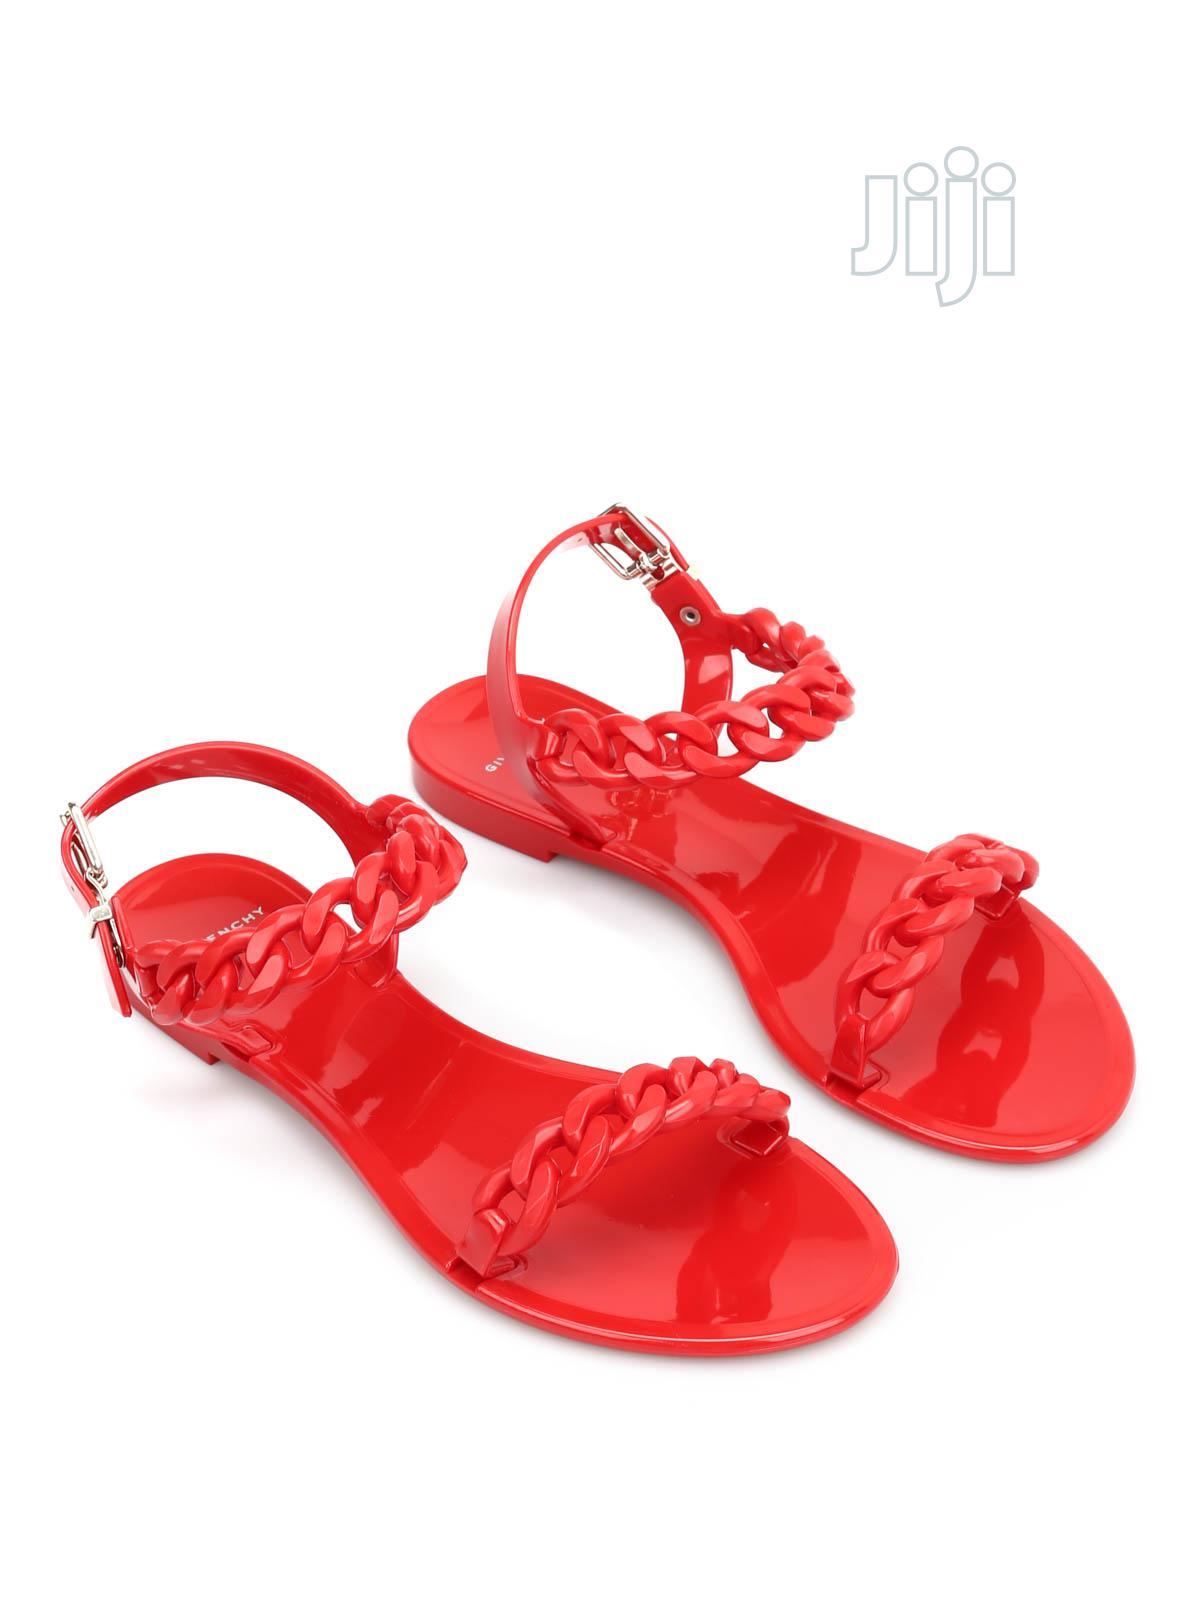 Givenchy Jelly Rubber Sandals   Shoes for sale in Agboyi/Ketu, Lagos State, Nigeria